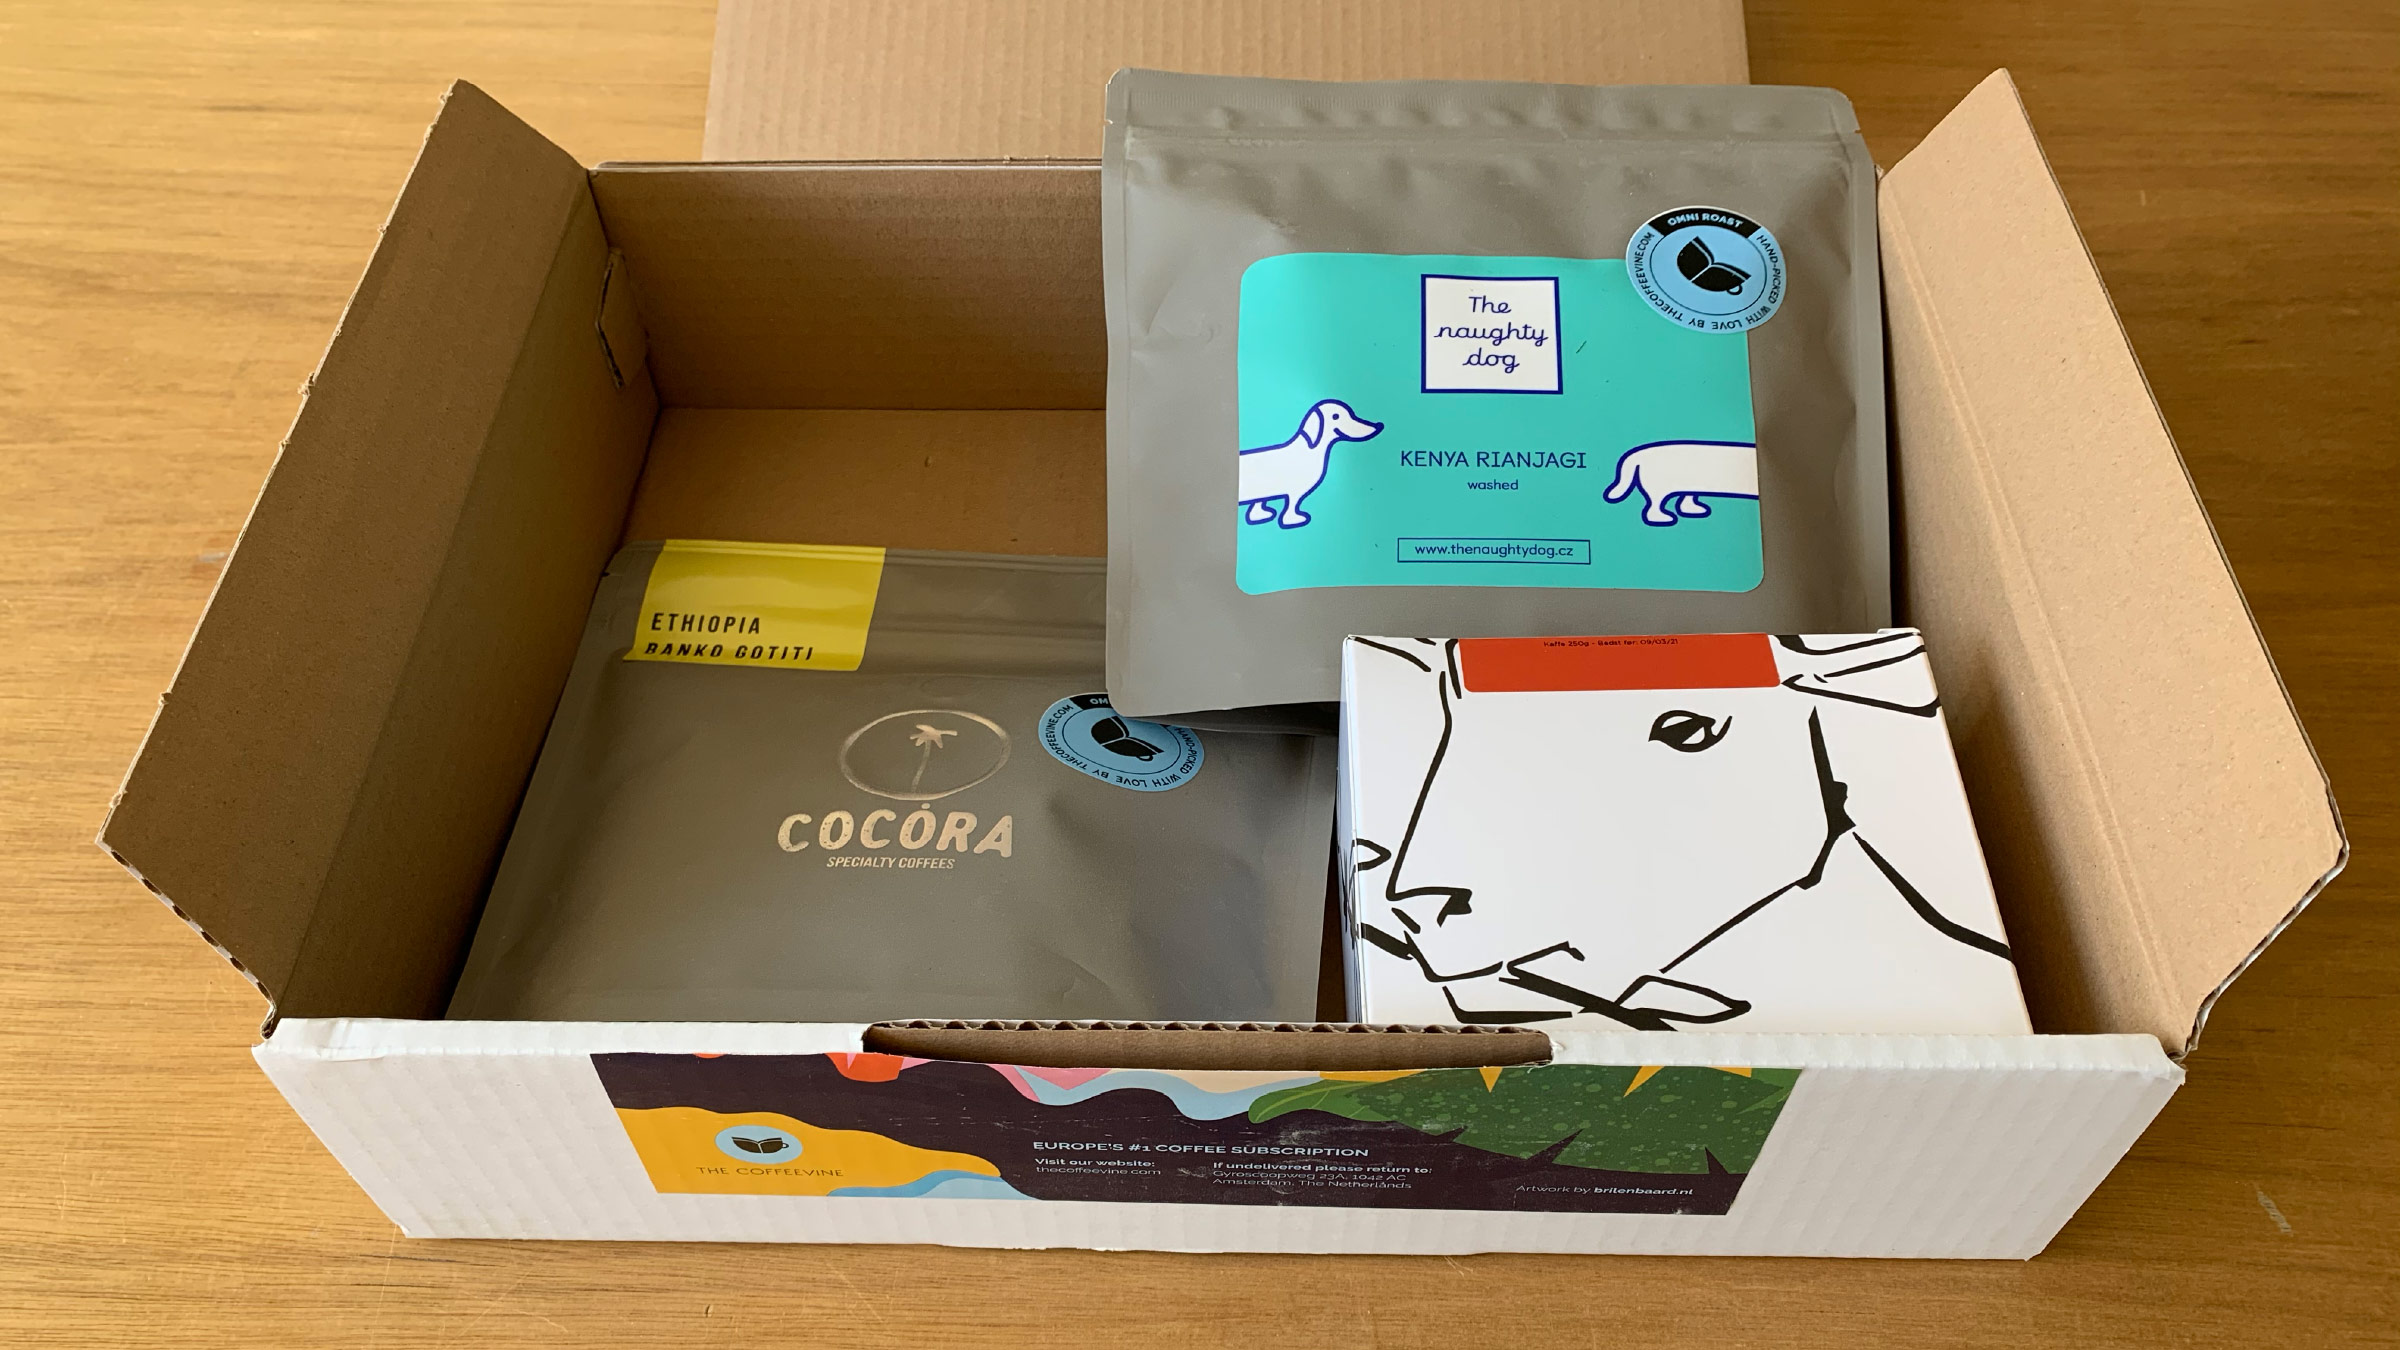 The Coffeevine box with coffe from Naughty Dog, Cocora and La Cabra